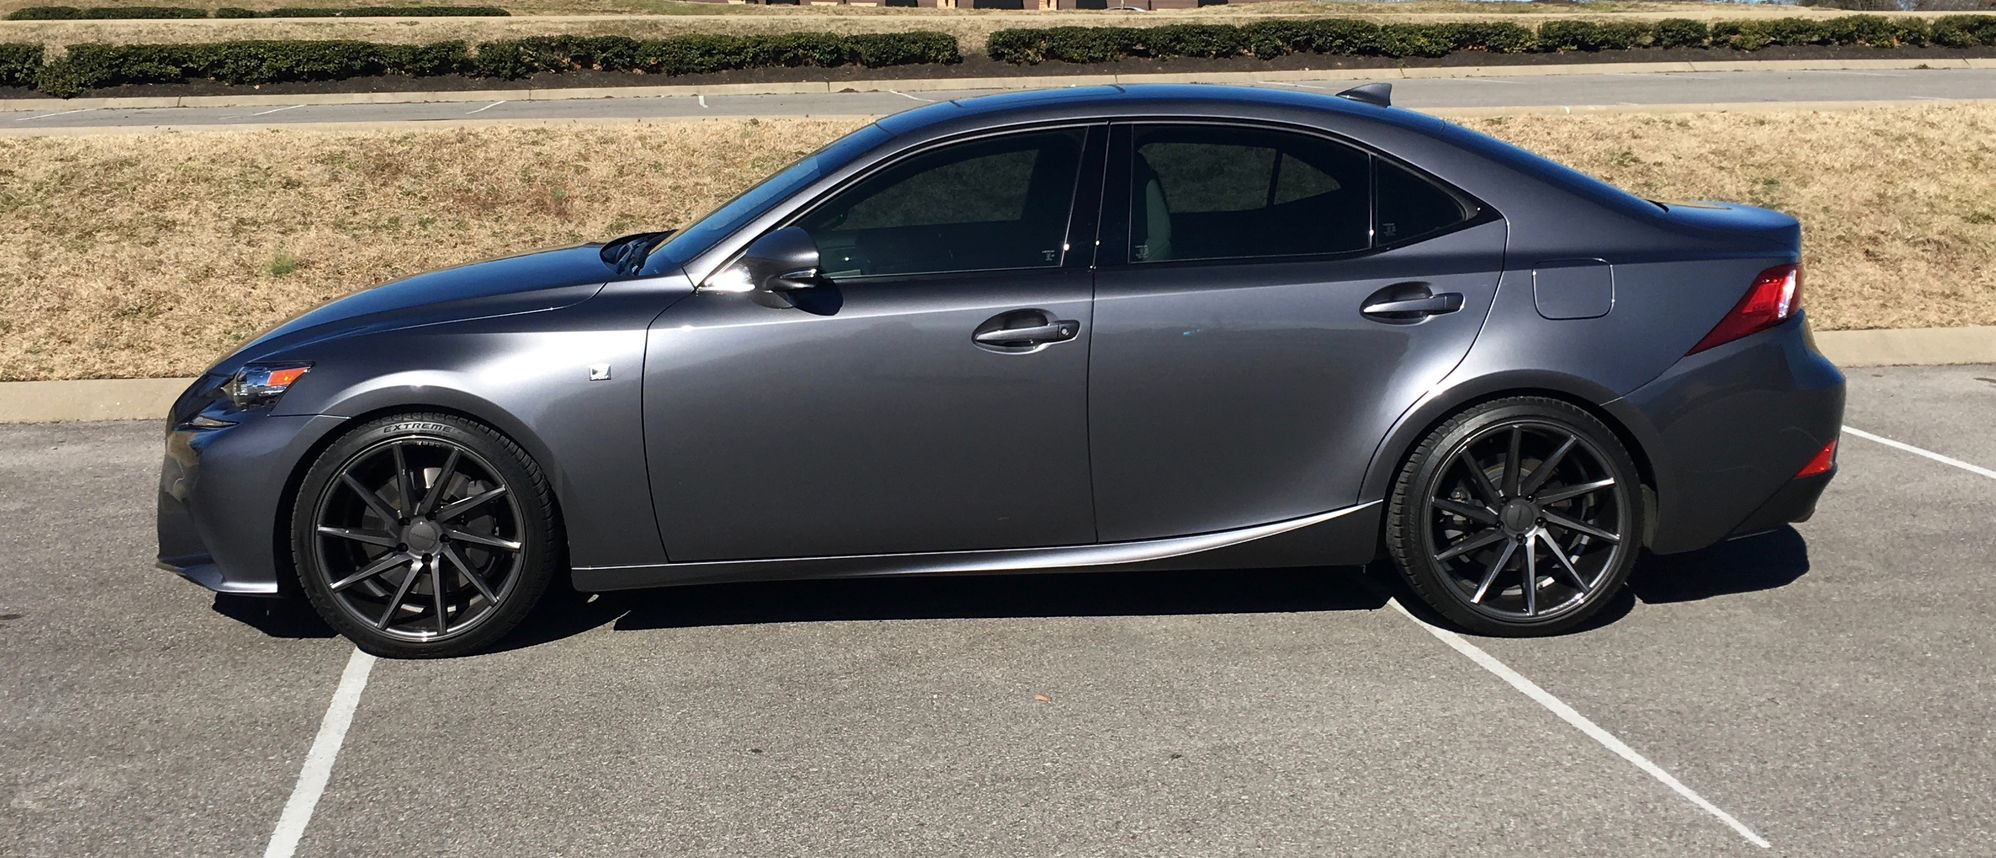 What Tint Looks Best On White Cars